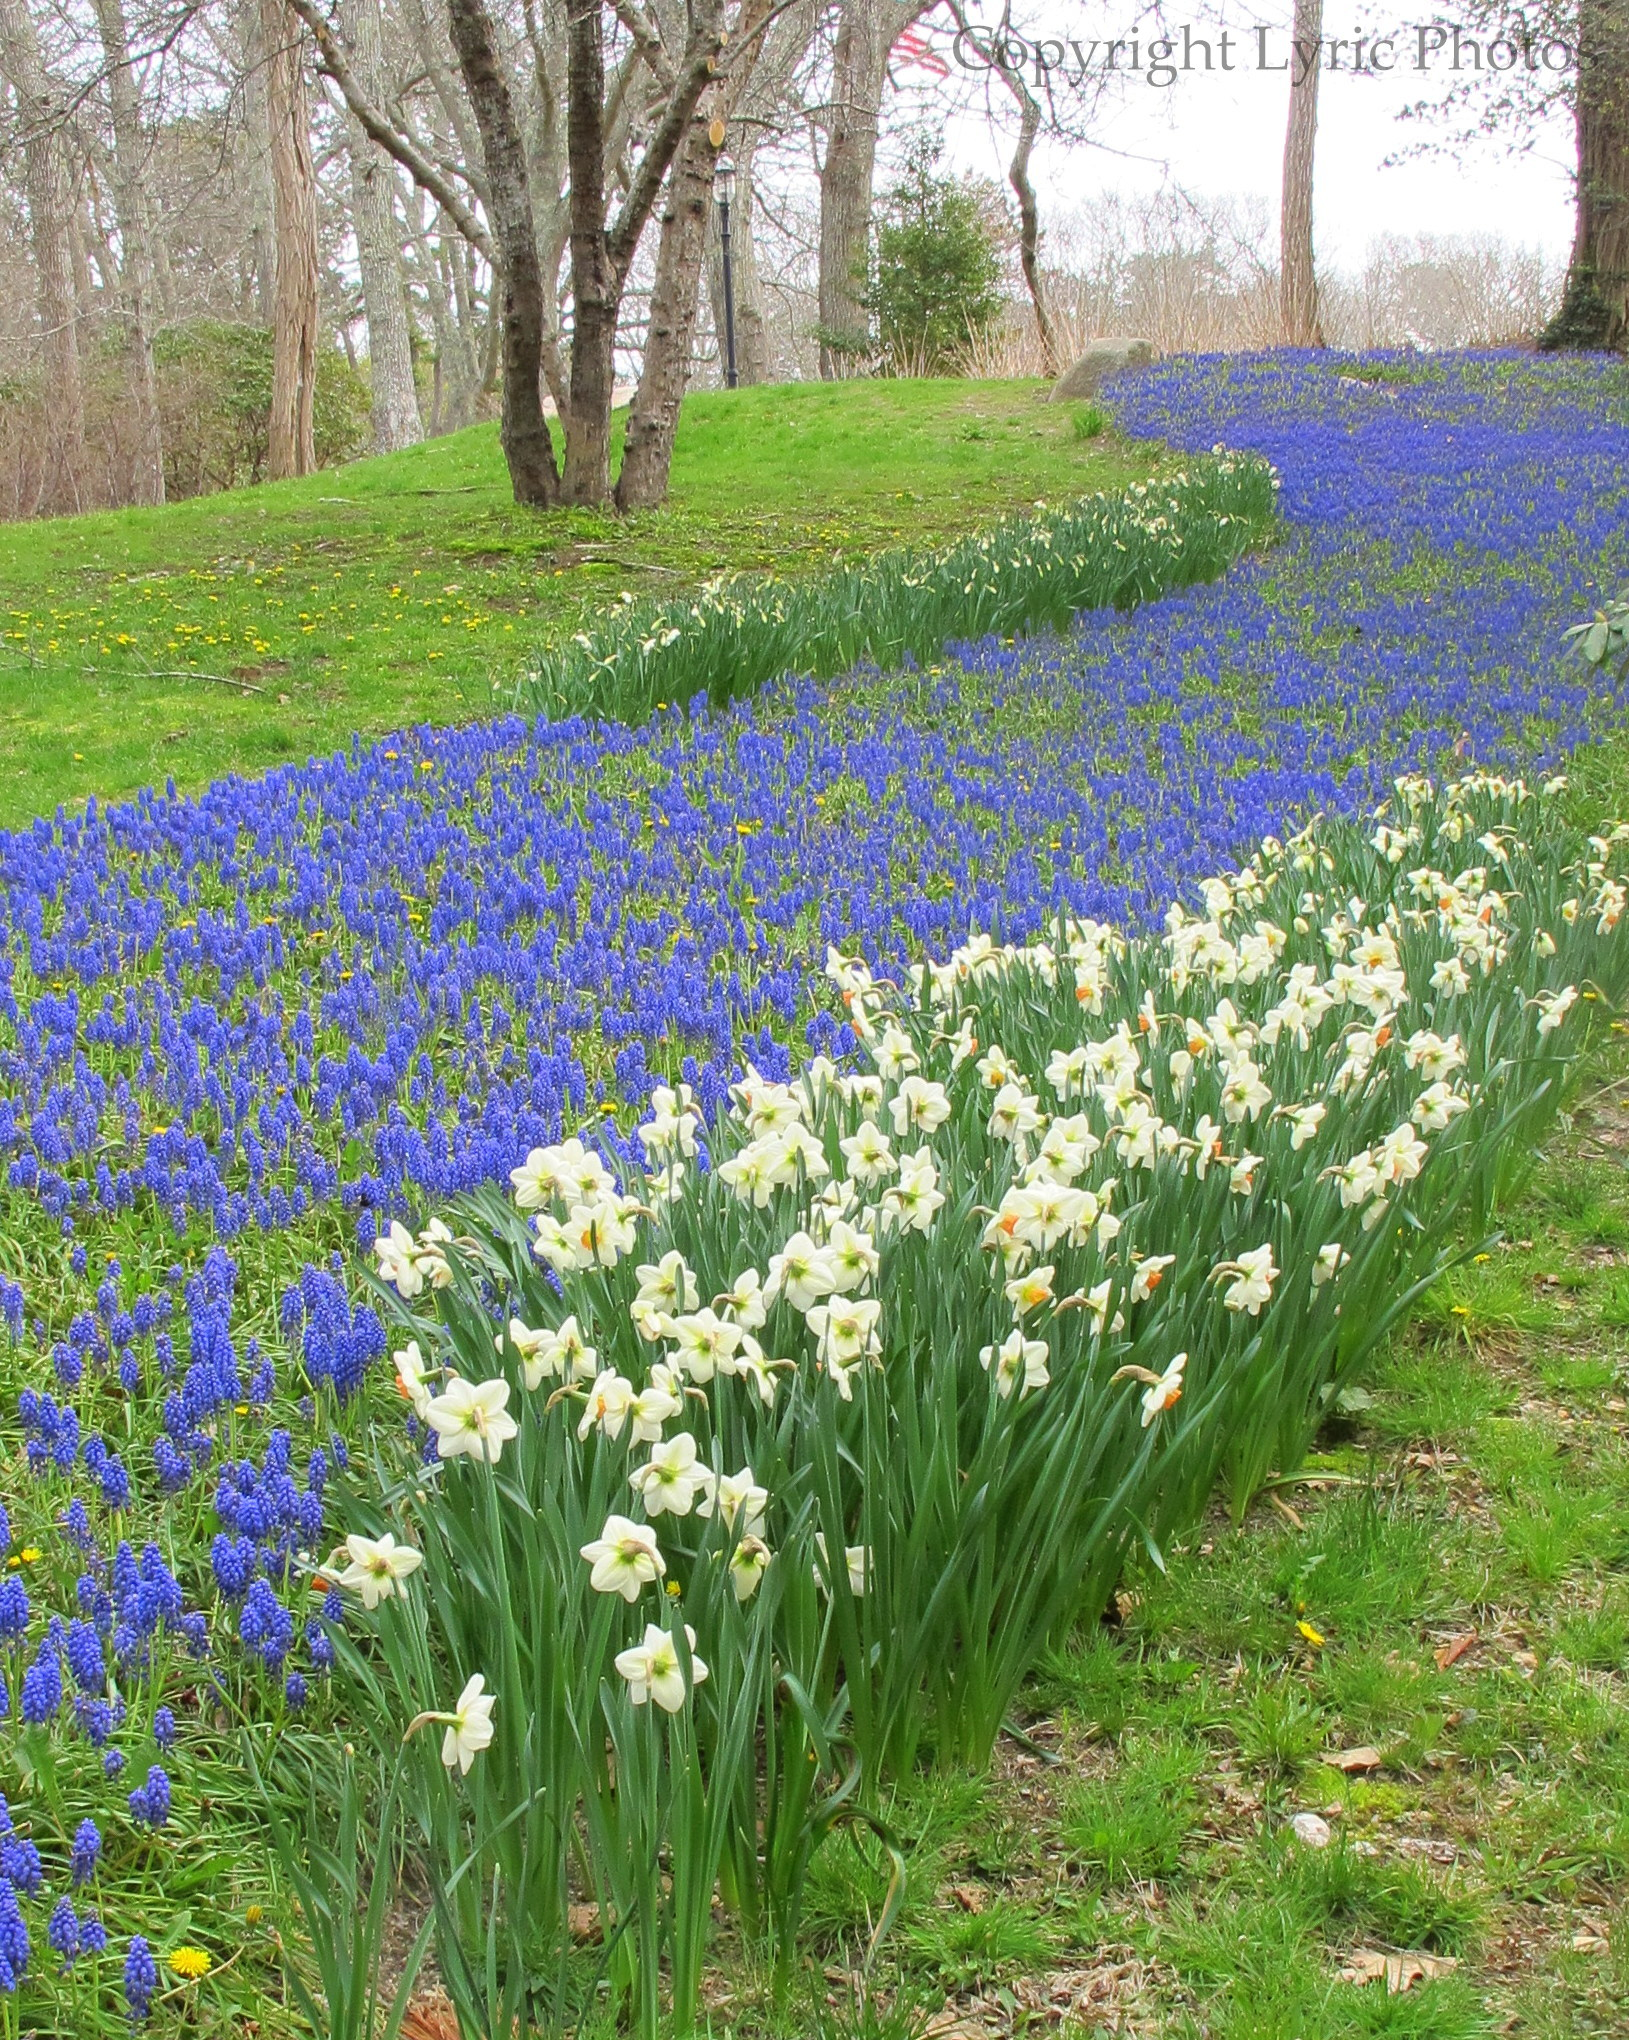 grape hyacinth daffodils photo